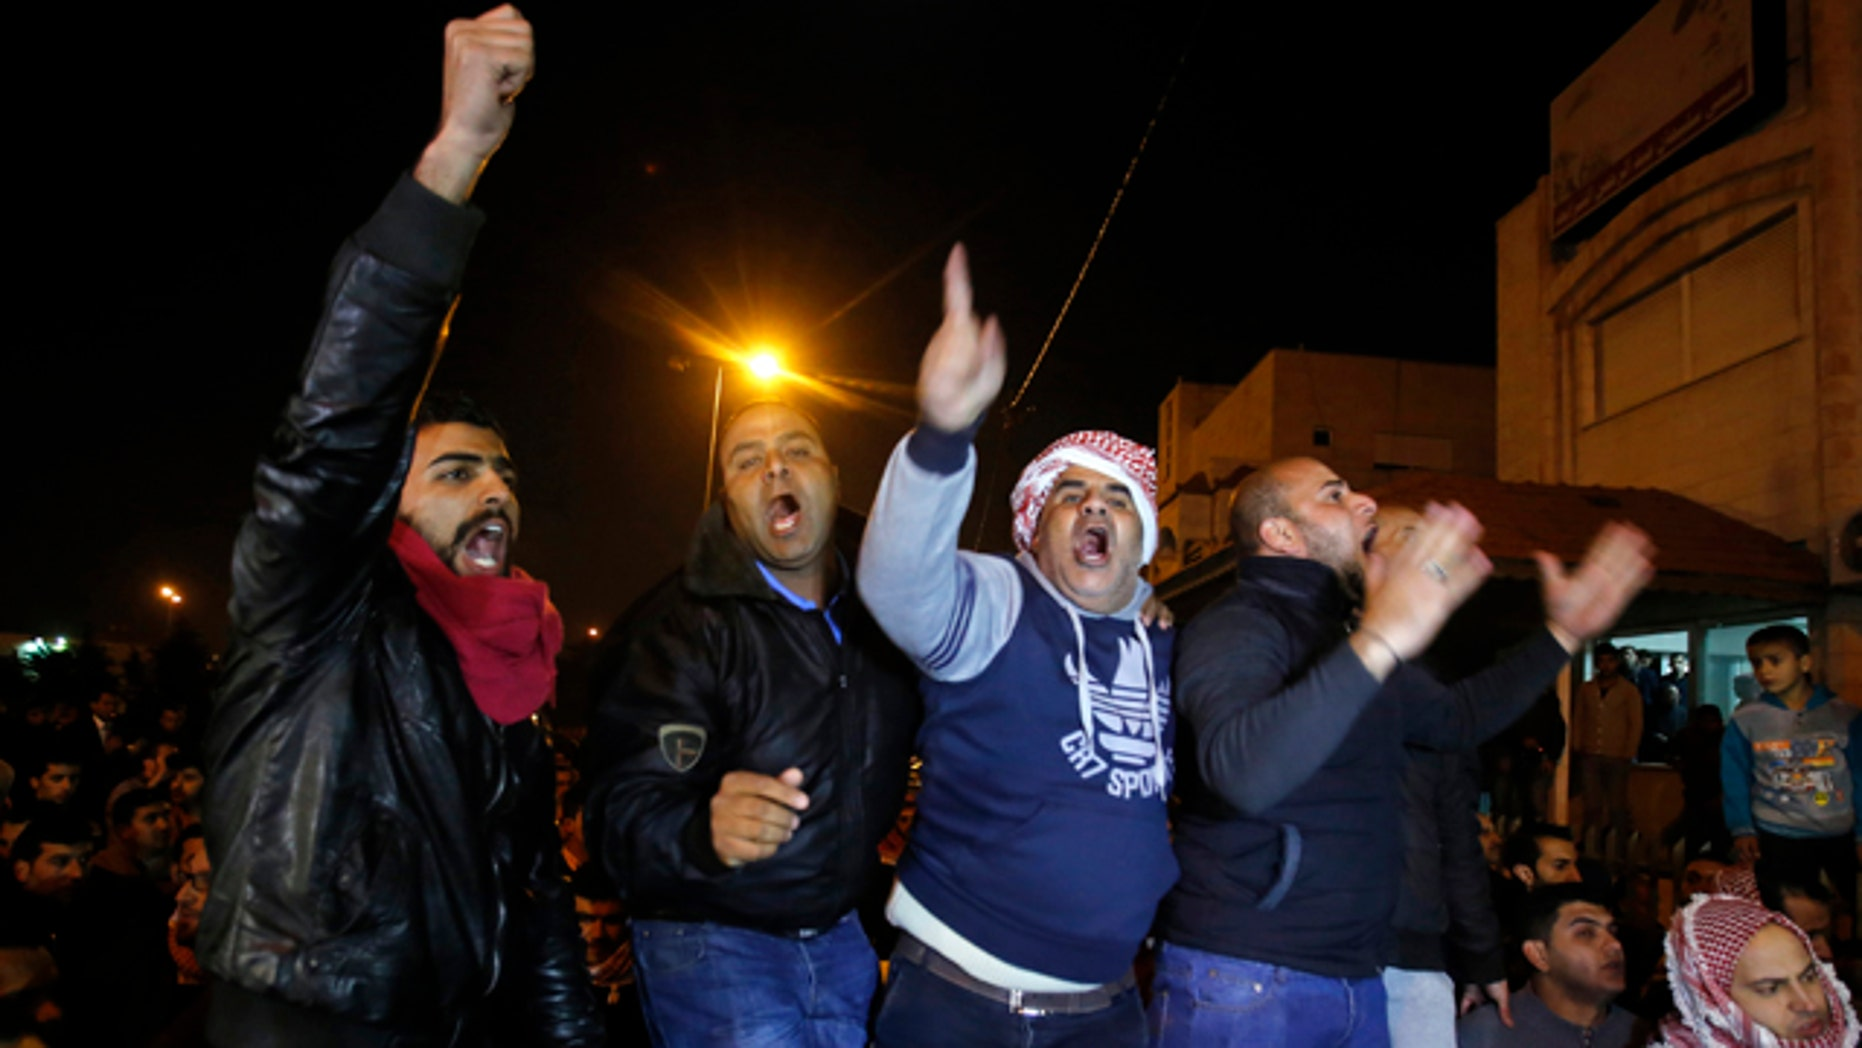 Feb. 3, 2015: Supporters and family members of Jordanian pilot Lt. Muath al-Kaseasbeh express their anger of his reported killing outside the tribal gathering chamber in Amman, Jordan. (AP Photo/Raad Adayleh)